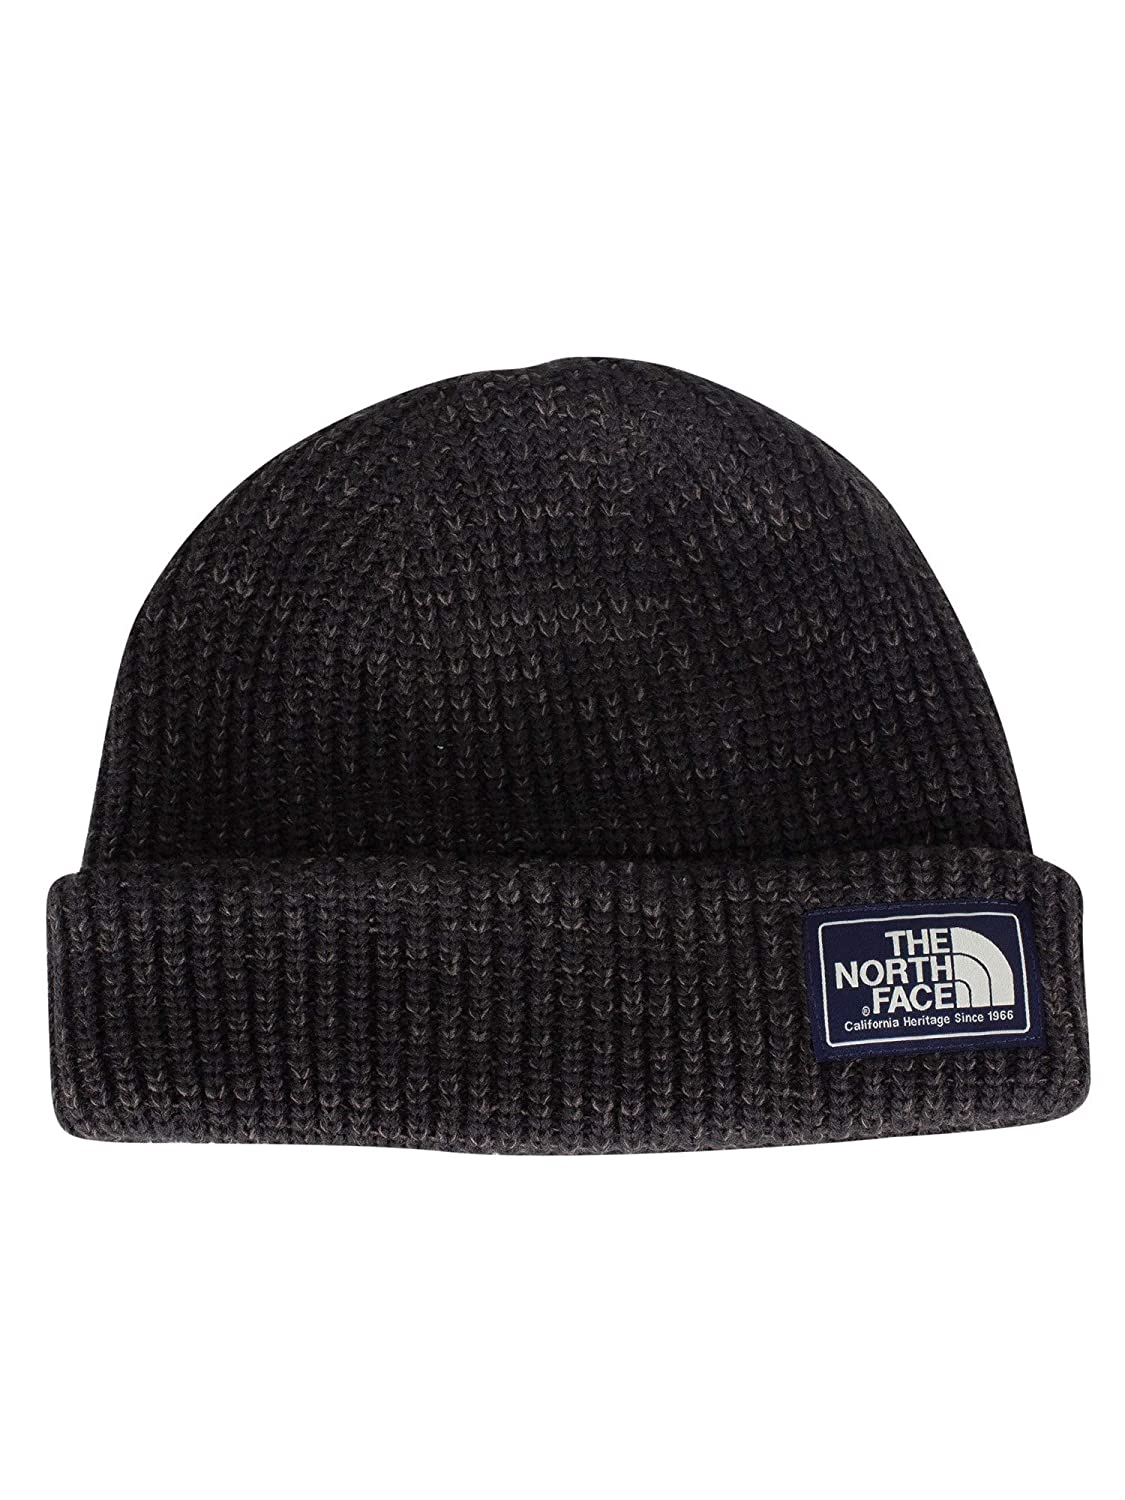 The North Face T93fjw - Gorros T93FJWJK3REGOS Unisex Adulto ...